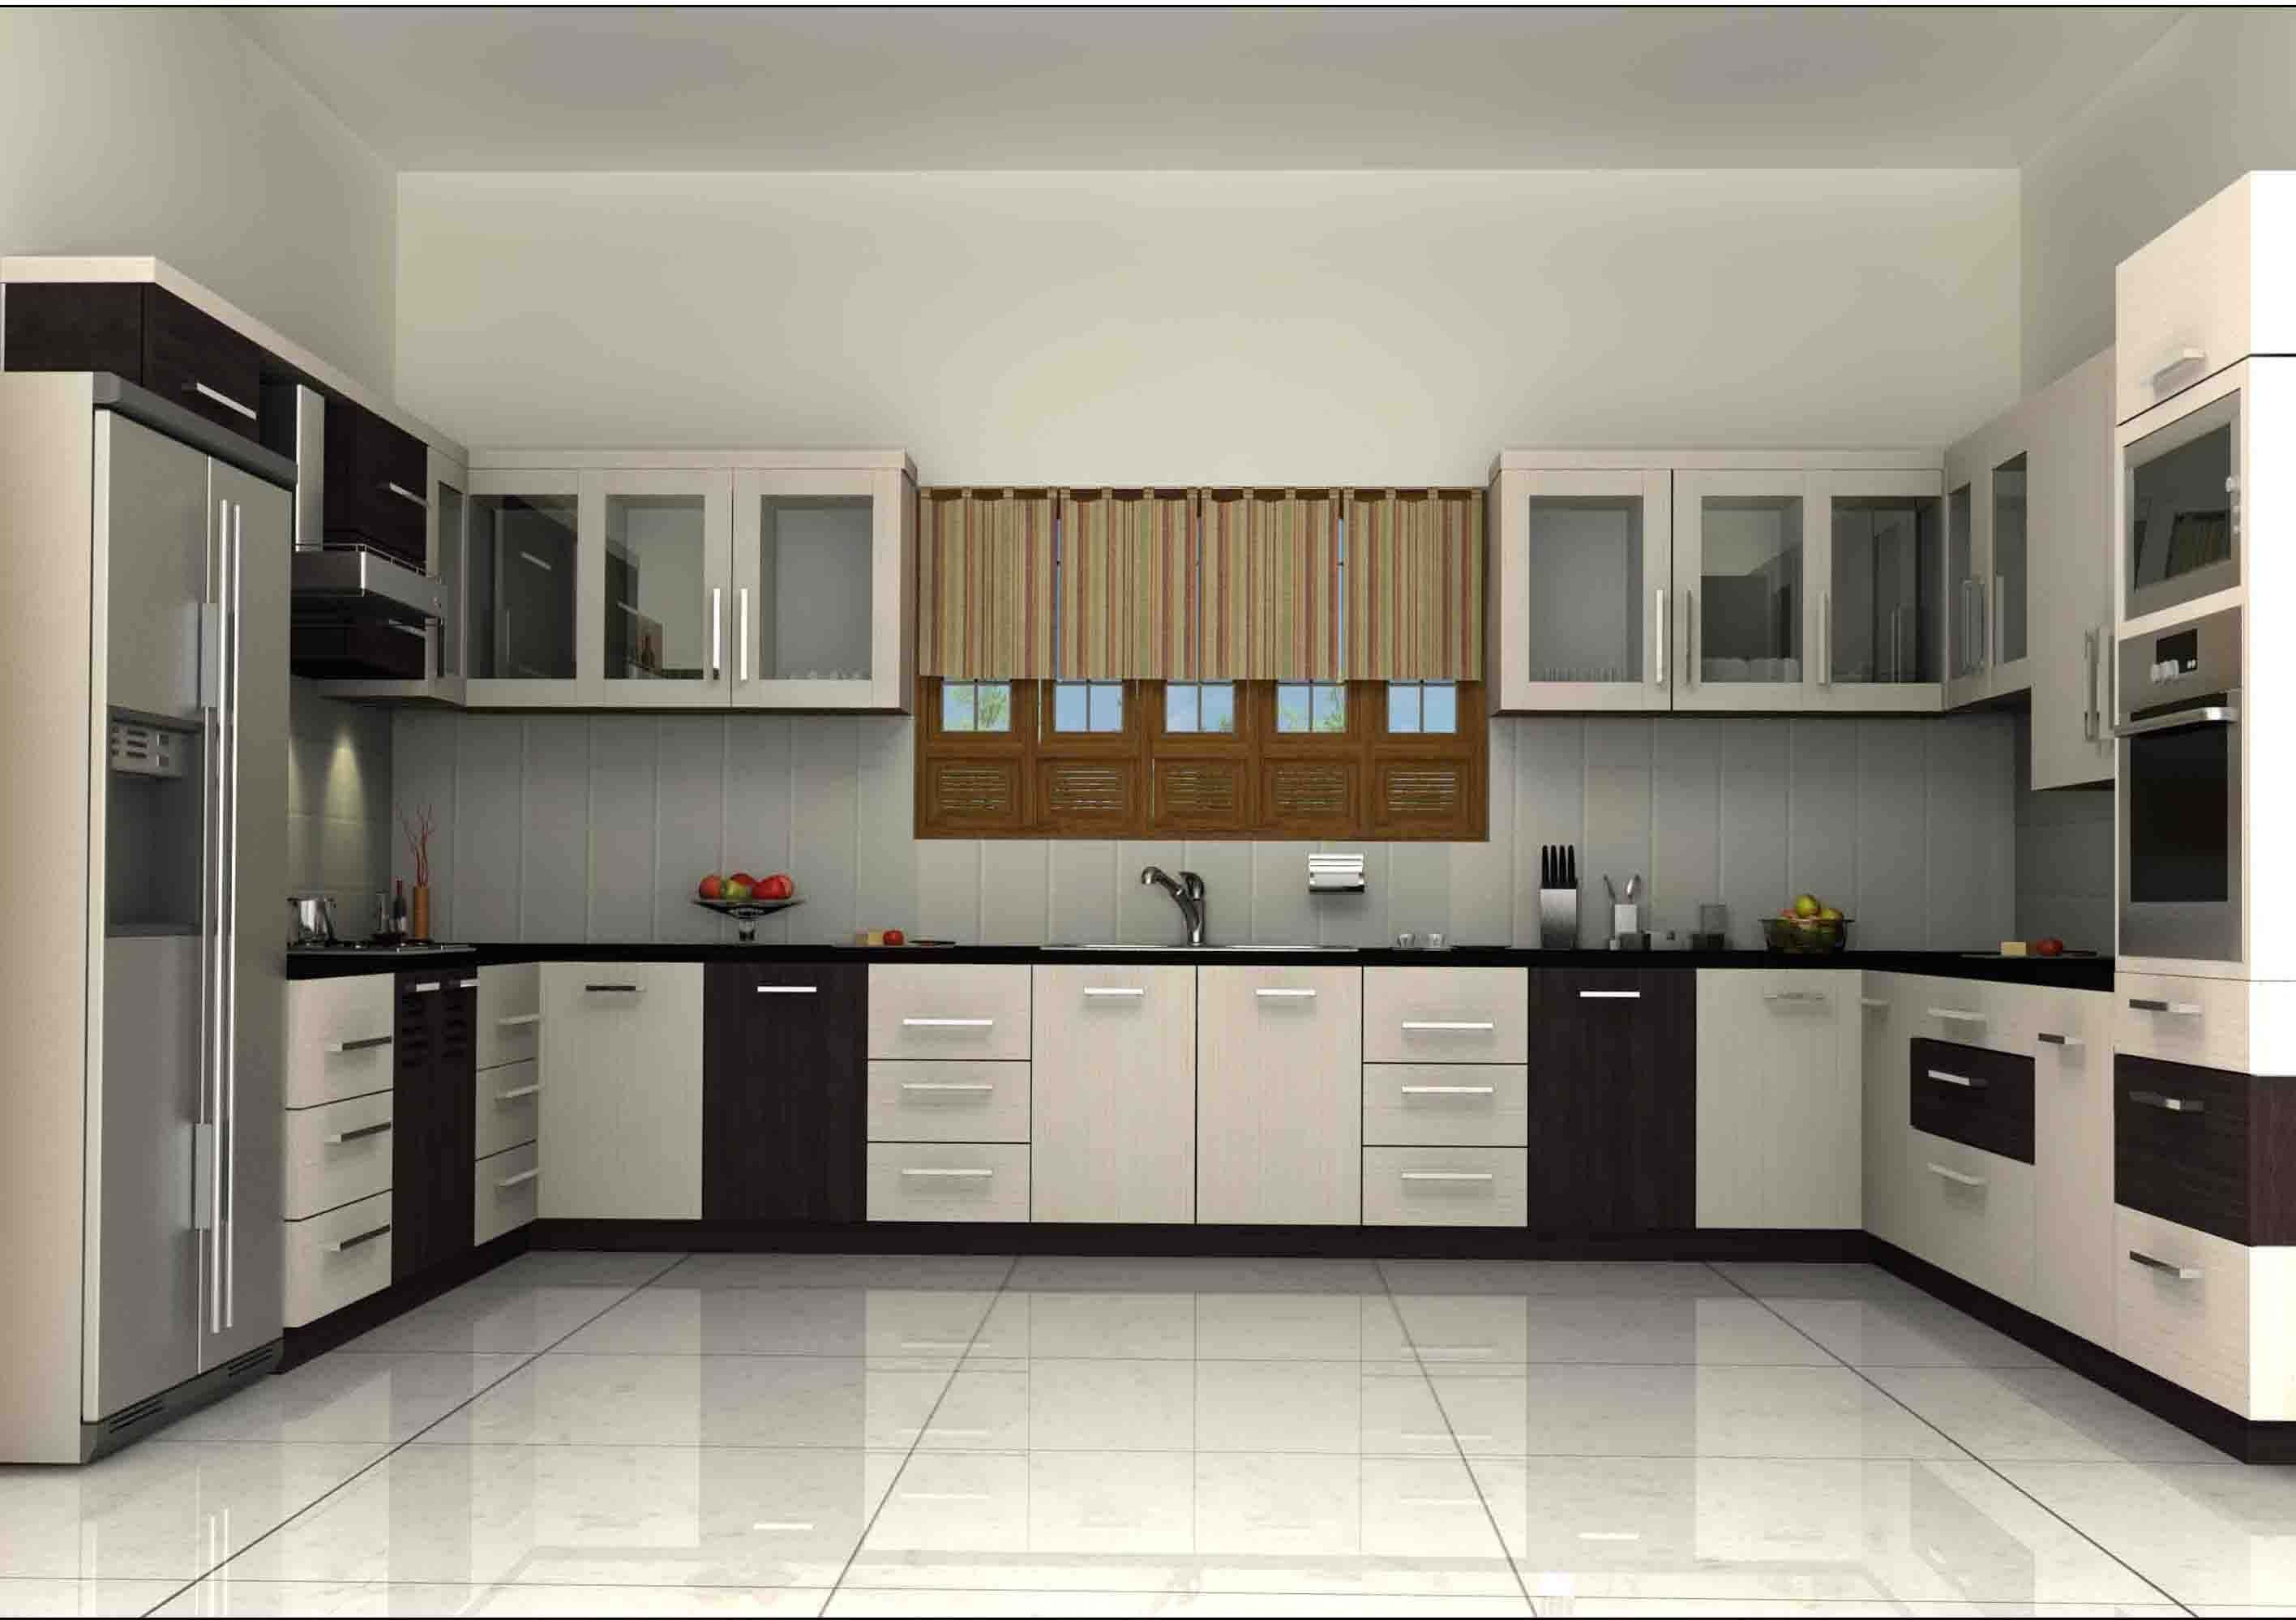 55 Modular Kitchen Design Ideas For Indian Homes Interior Design Kitchen Small Interior Design Kitchen Kitchen Room Design